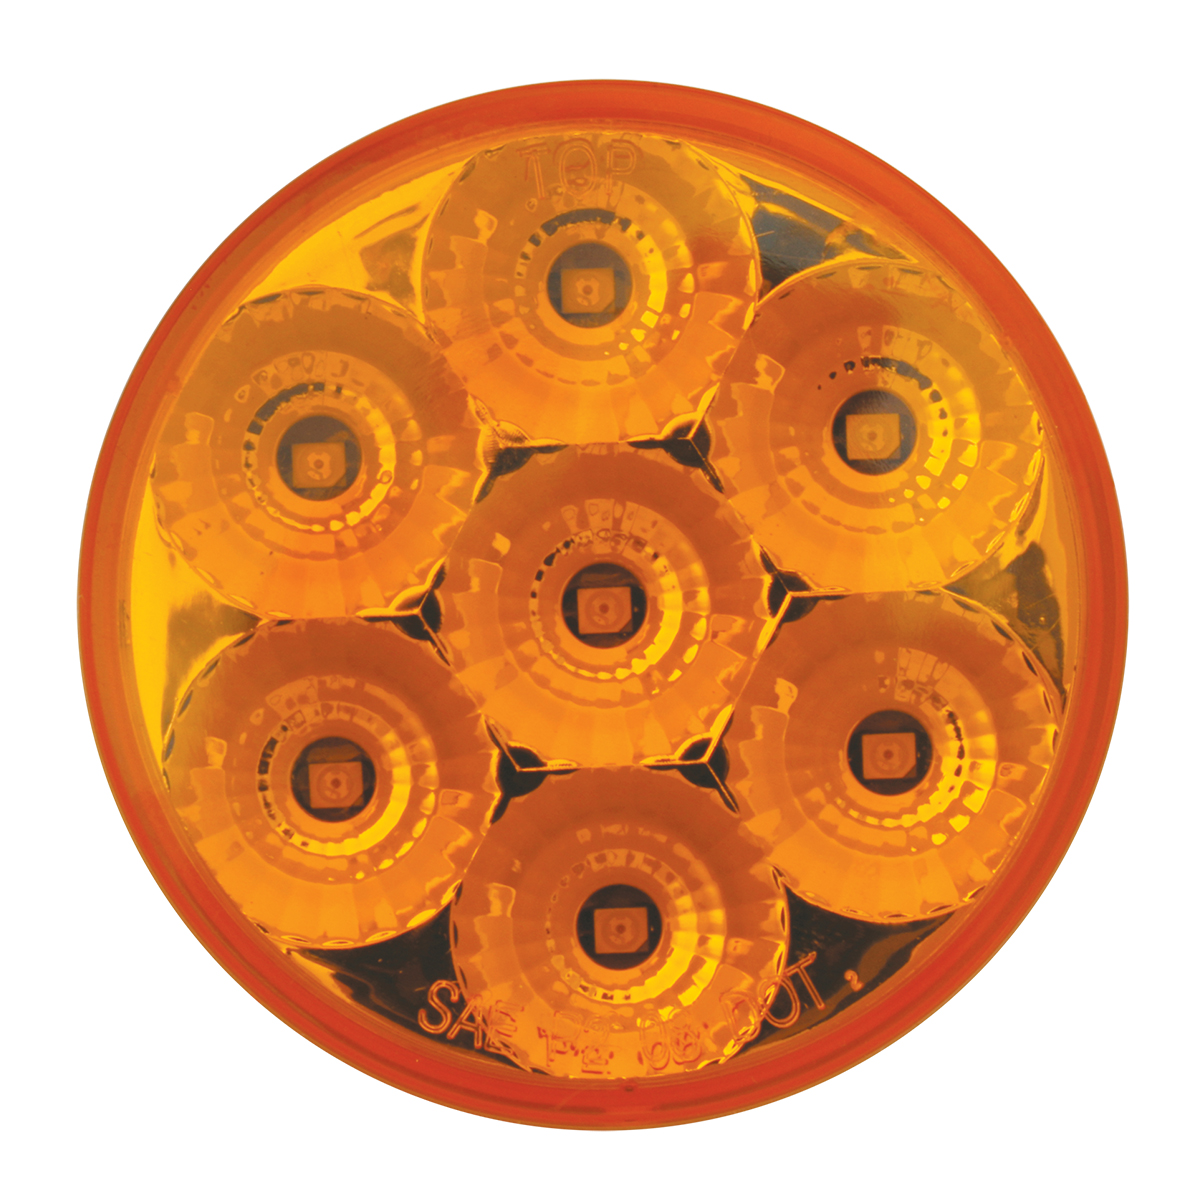 "76660 2-1/2"" Spyder LED Marker Light"